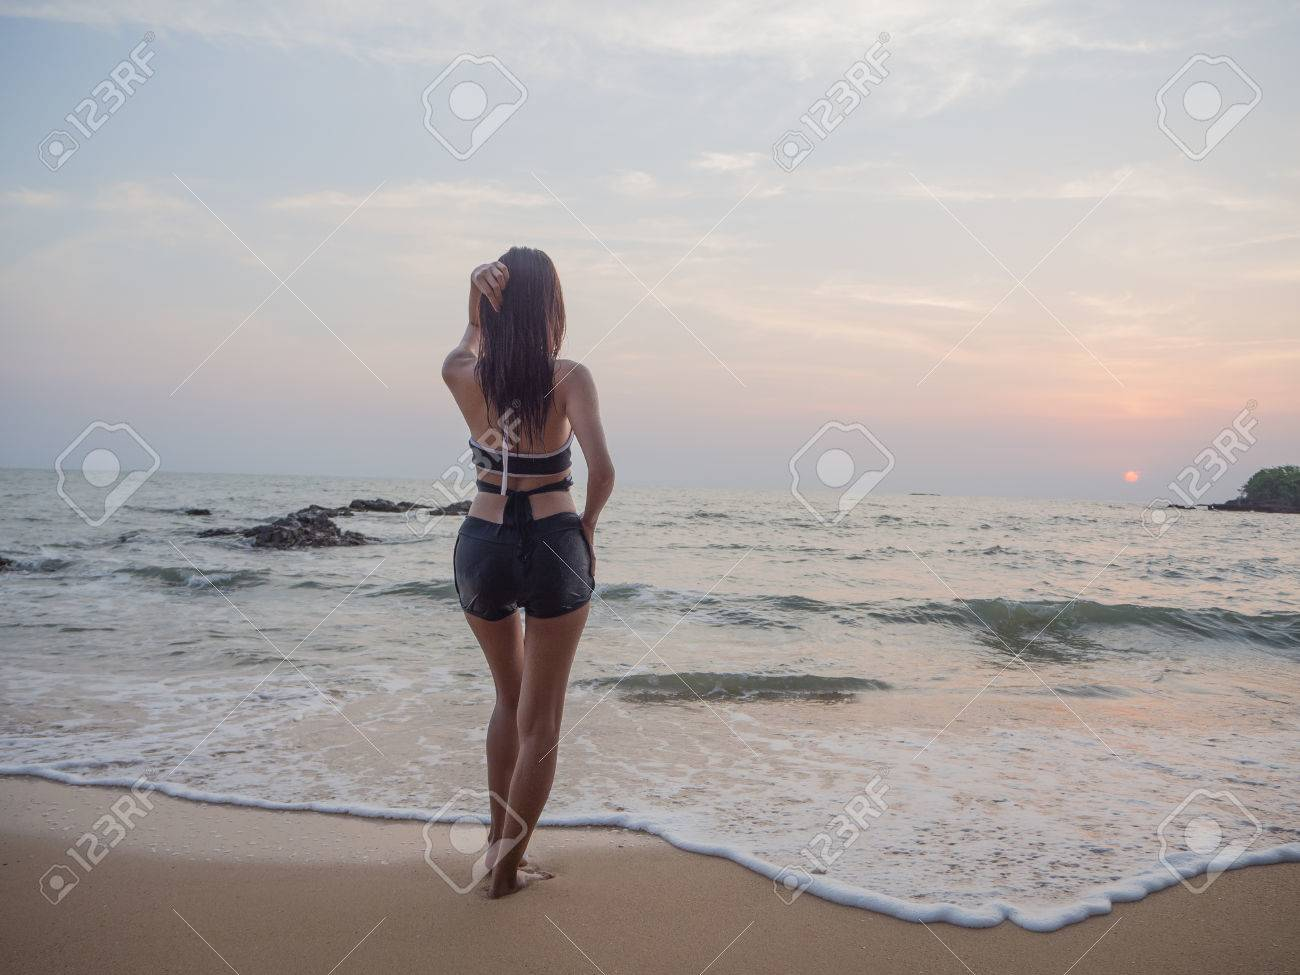 Female stand alone girl alone in the water, watery beach on the windy day.